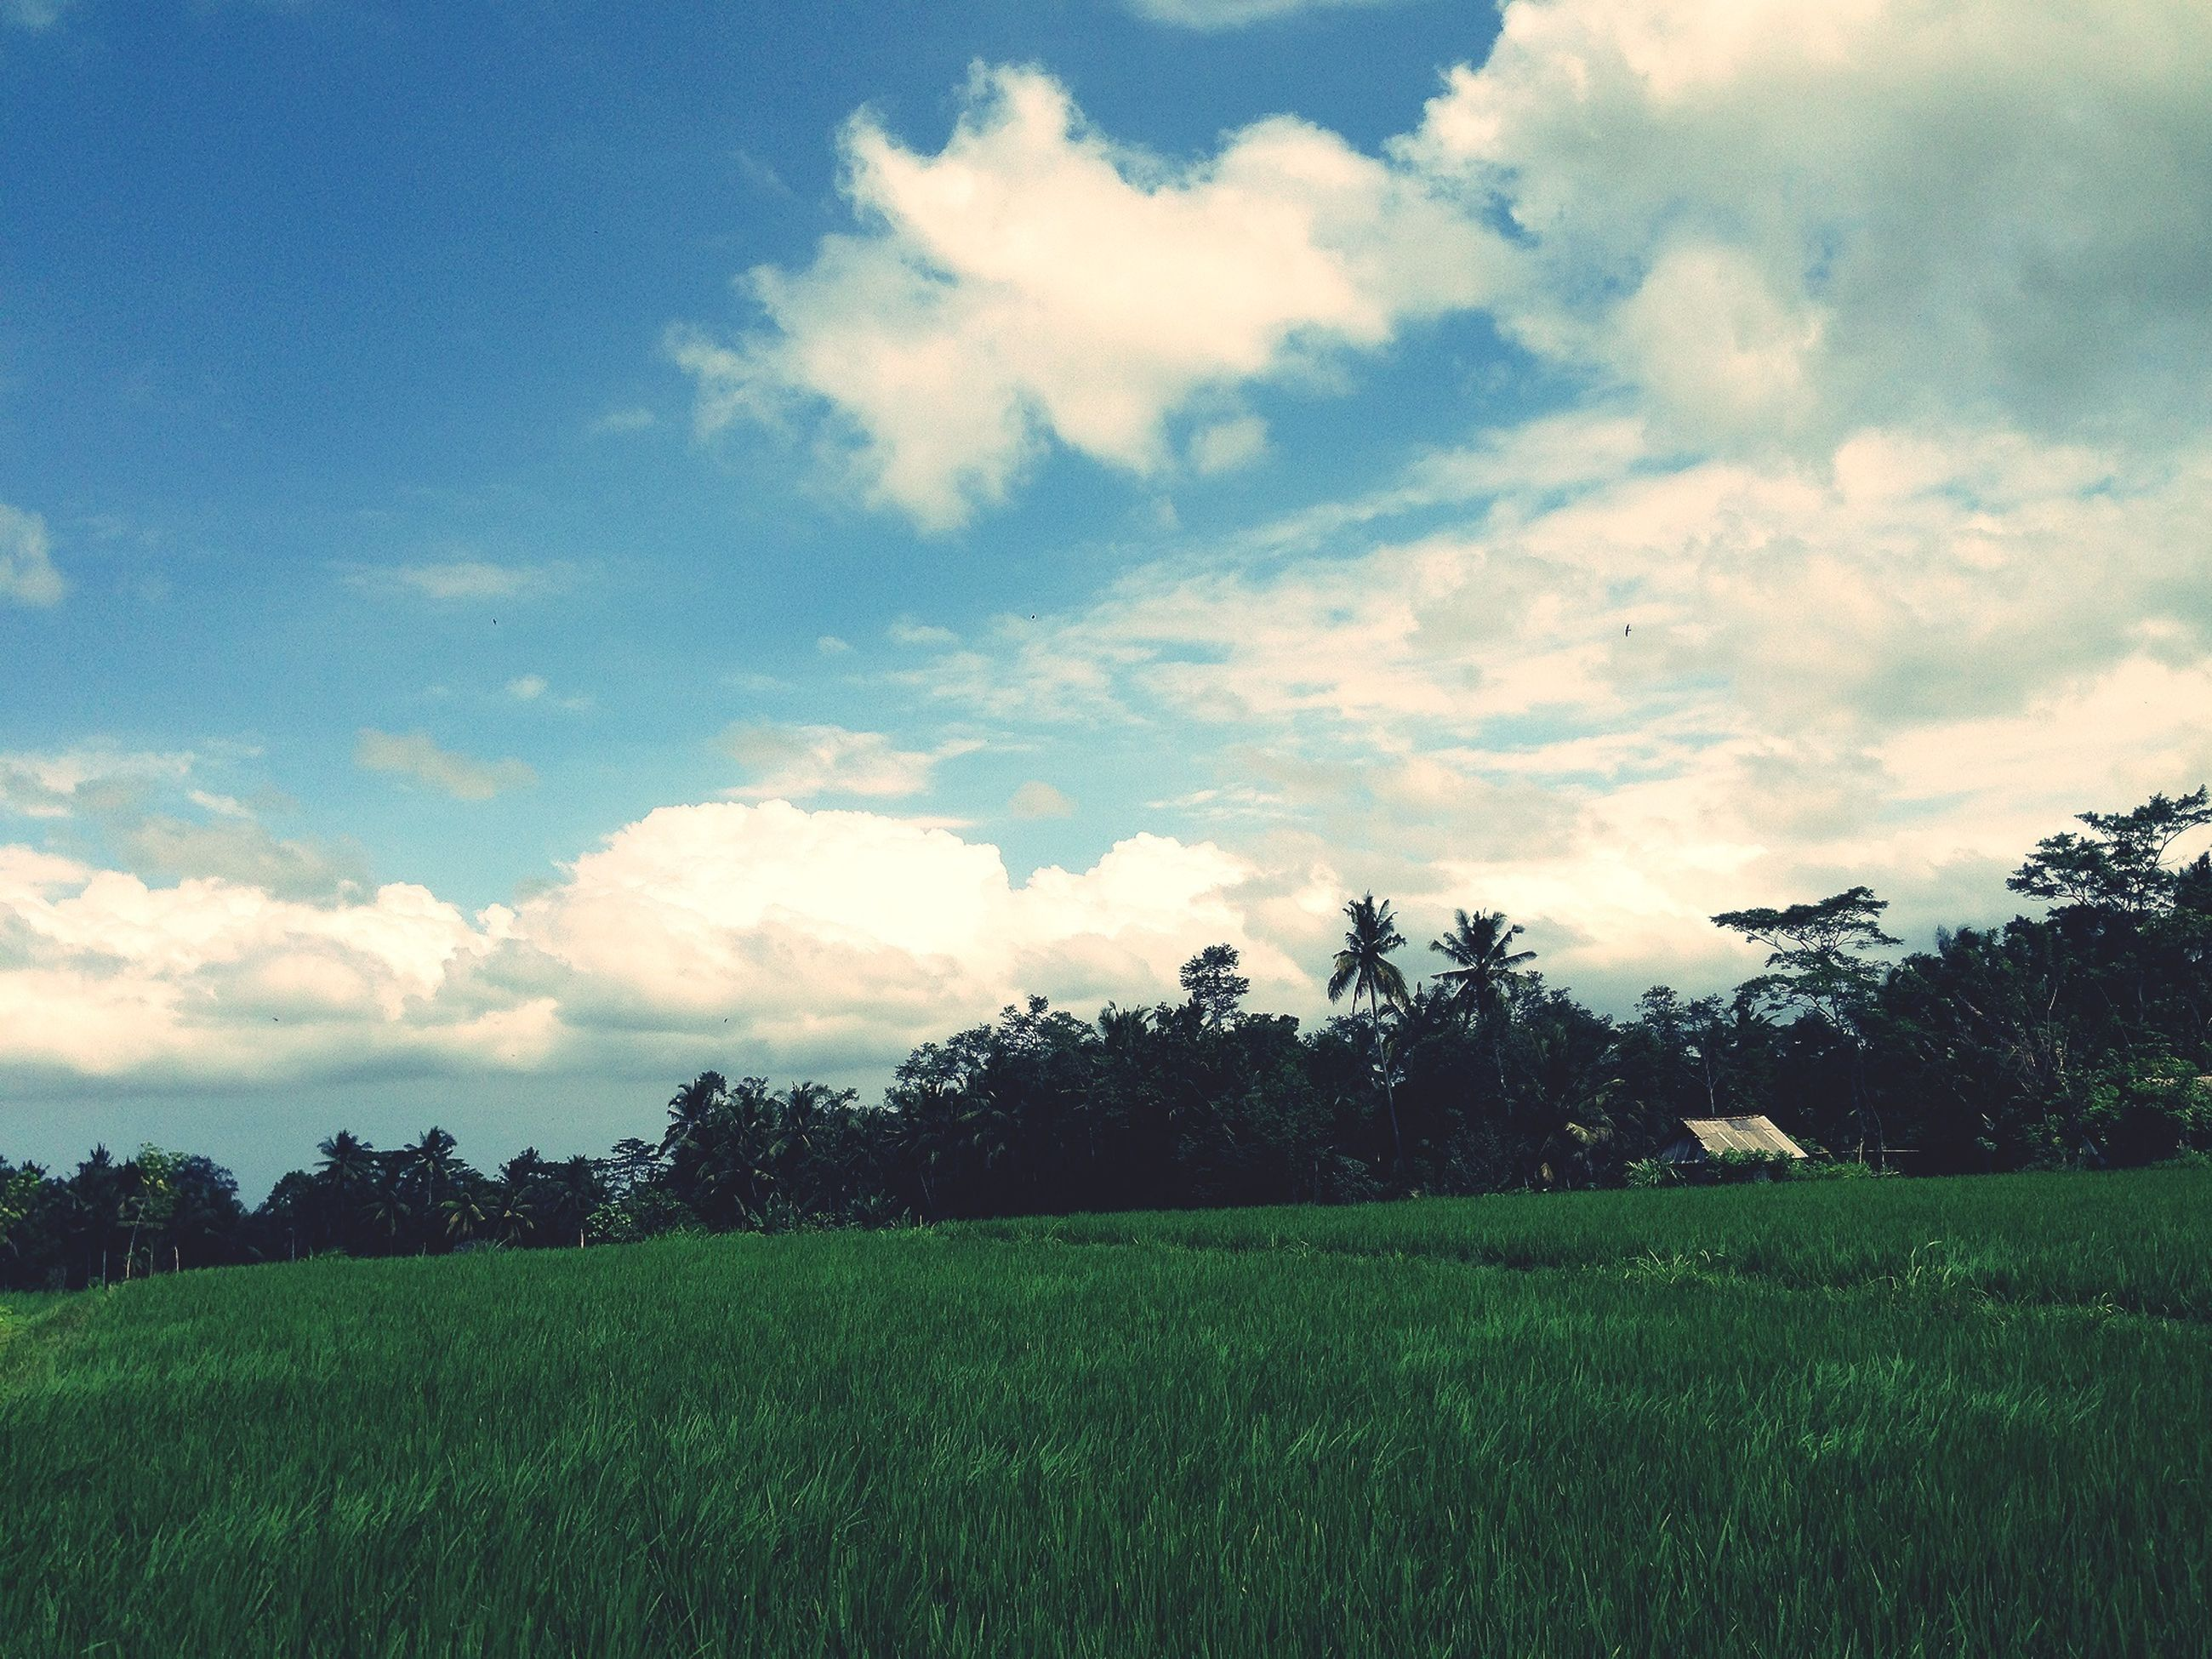 field, sky, landscape, grass, tranquil scene, tranquility, tree, beauty in nature, scenics, nature, cloud - sky, growth, grassy, green color, cloud, rural scene, cloudy, idyllic, outdoors, agriculture